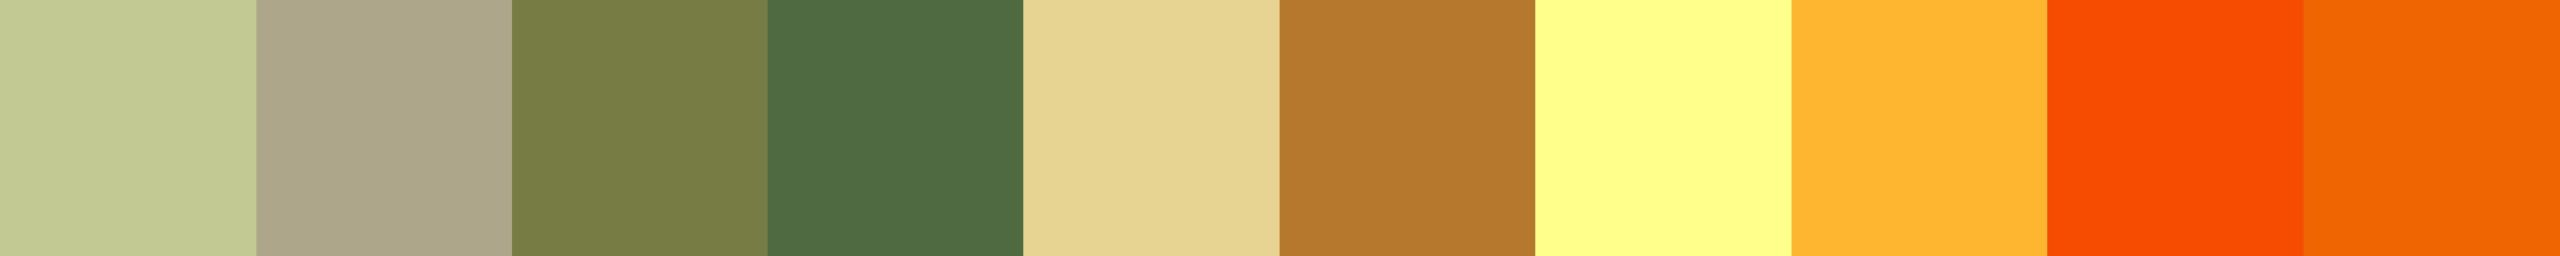 554 Pemba Color Palette